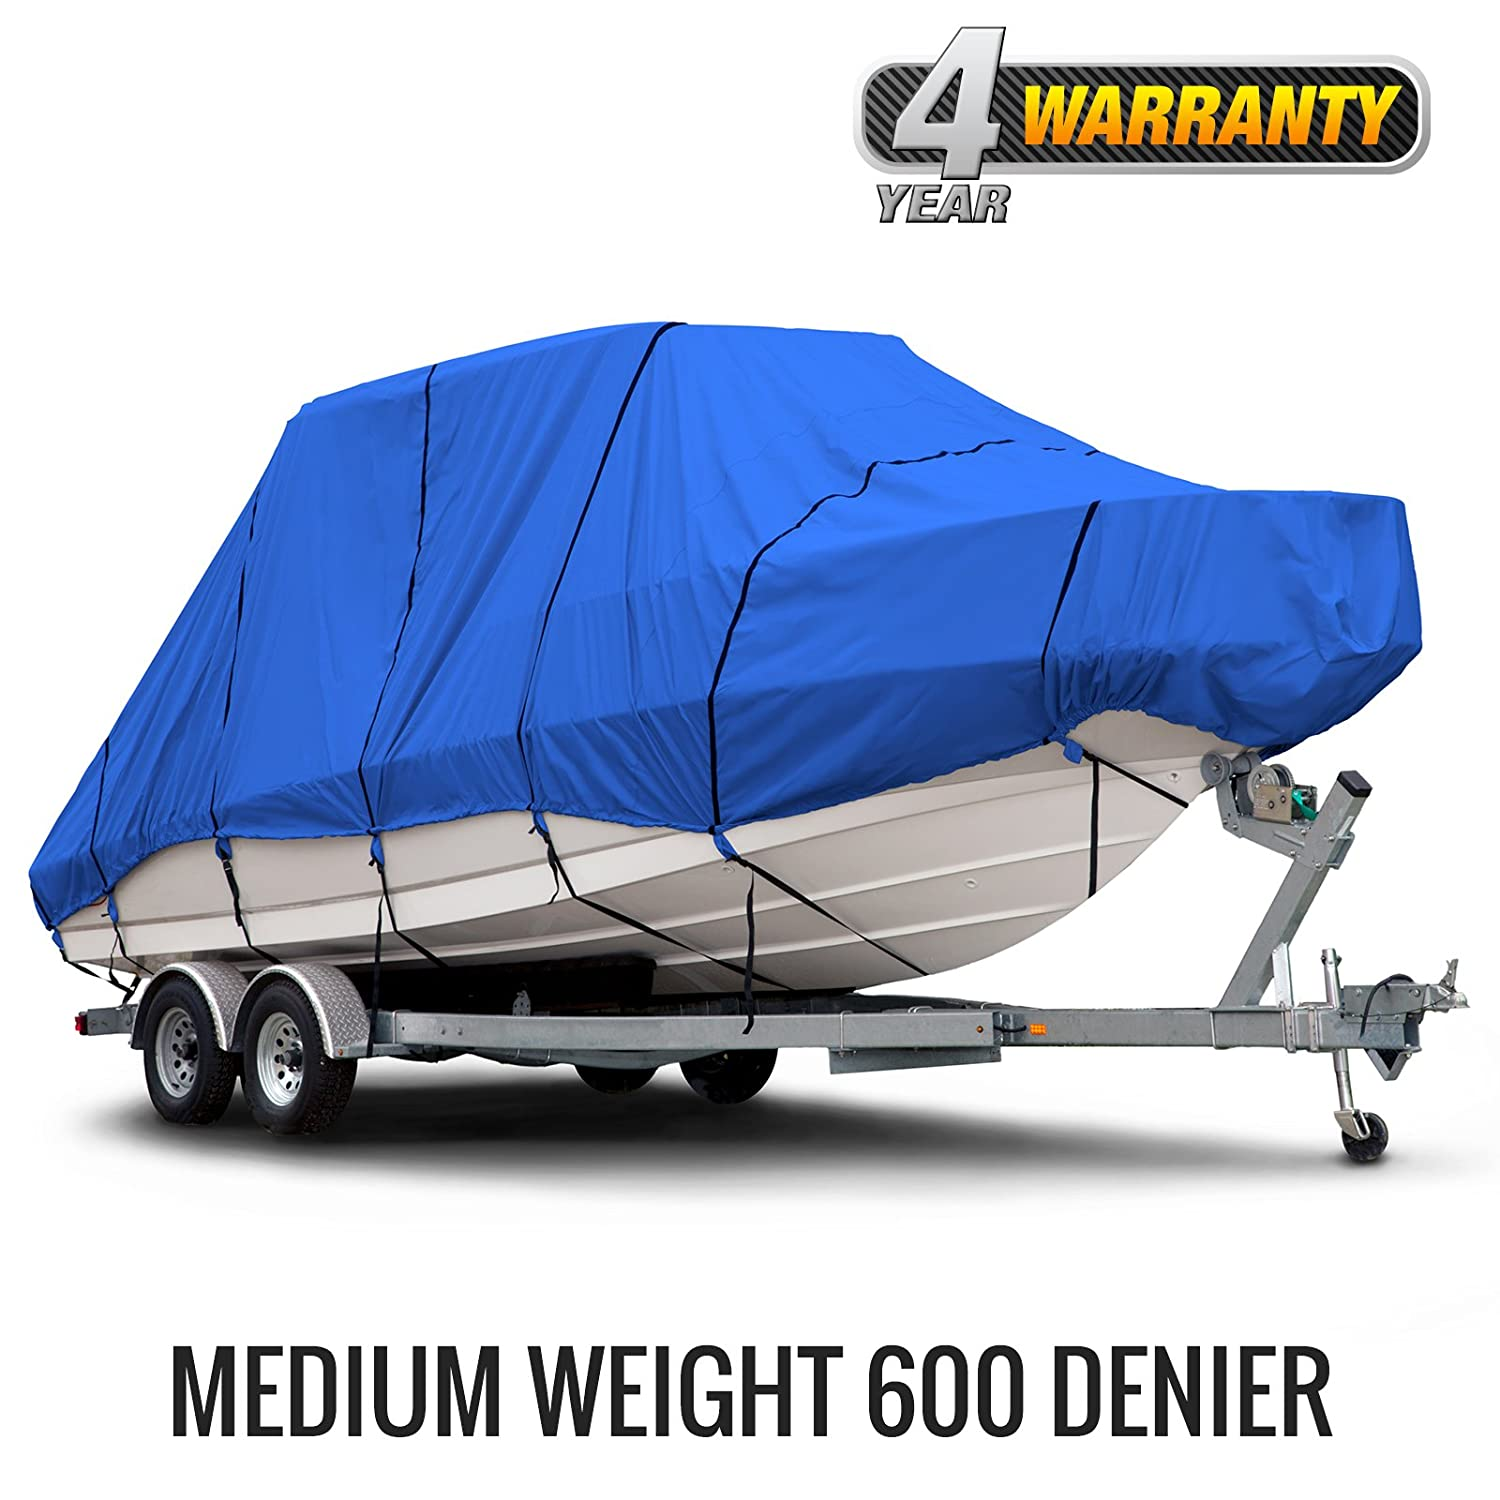 Beam Width Up to 106 Boat Cover Budge B-621-X6 Gray 20-22 Long